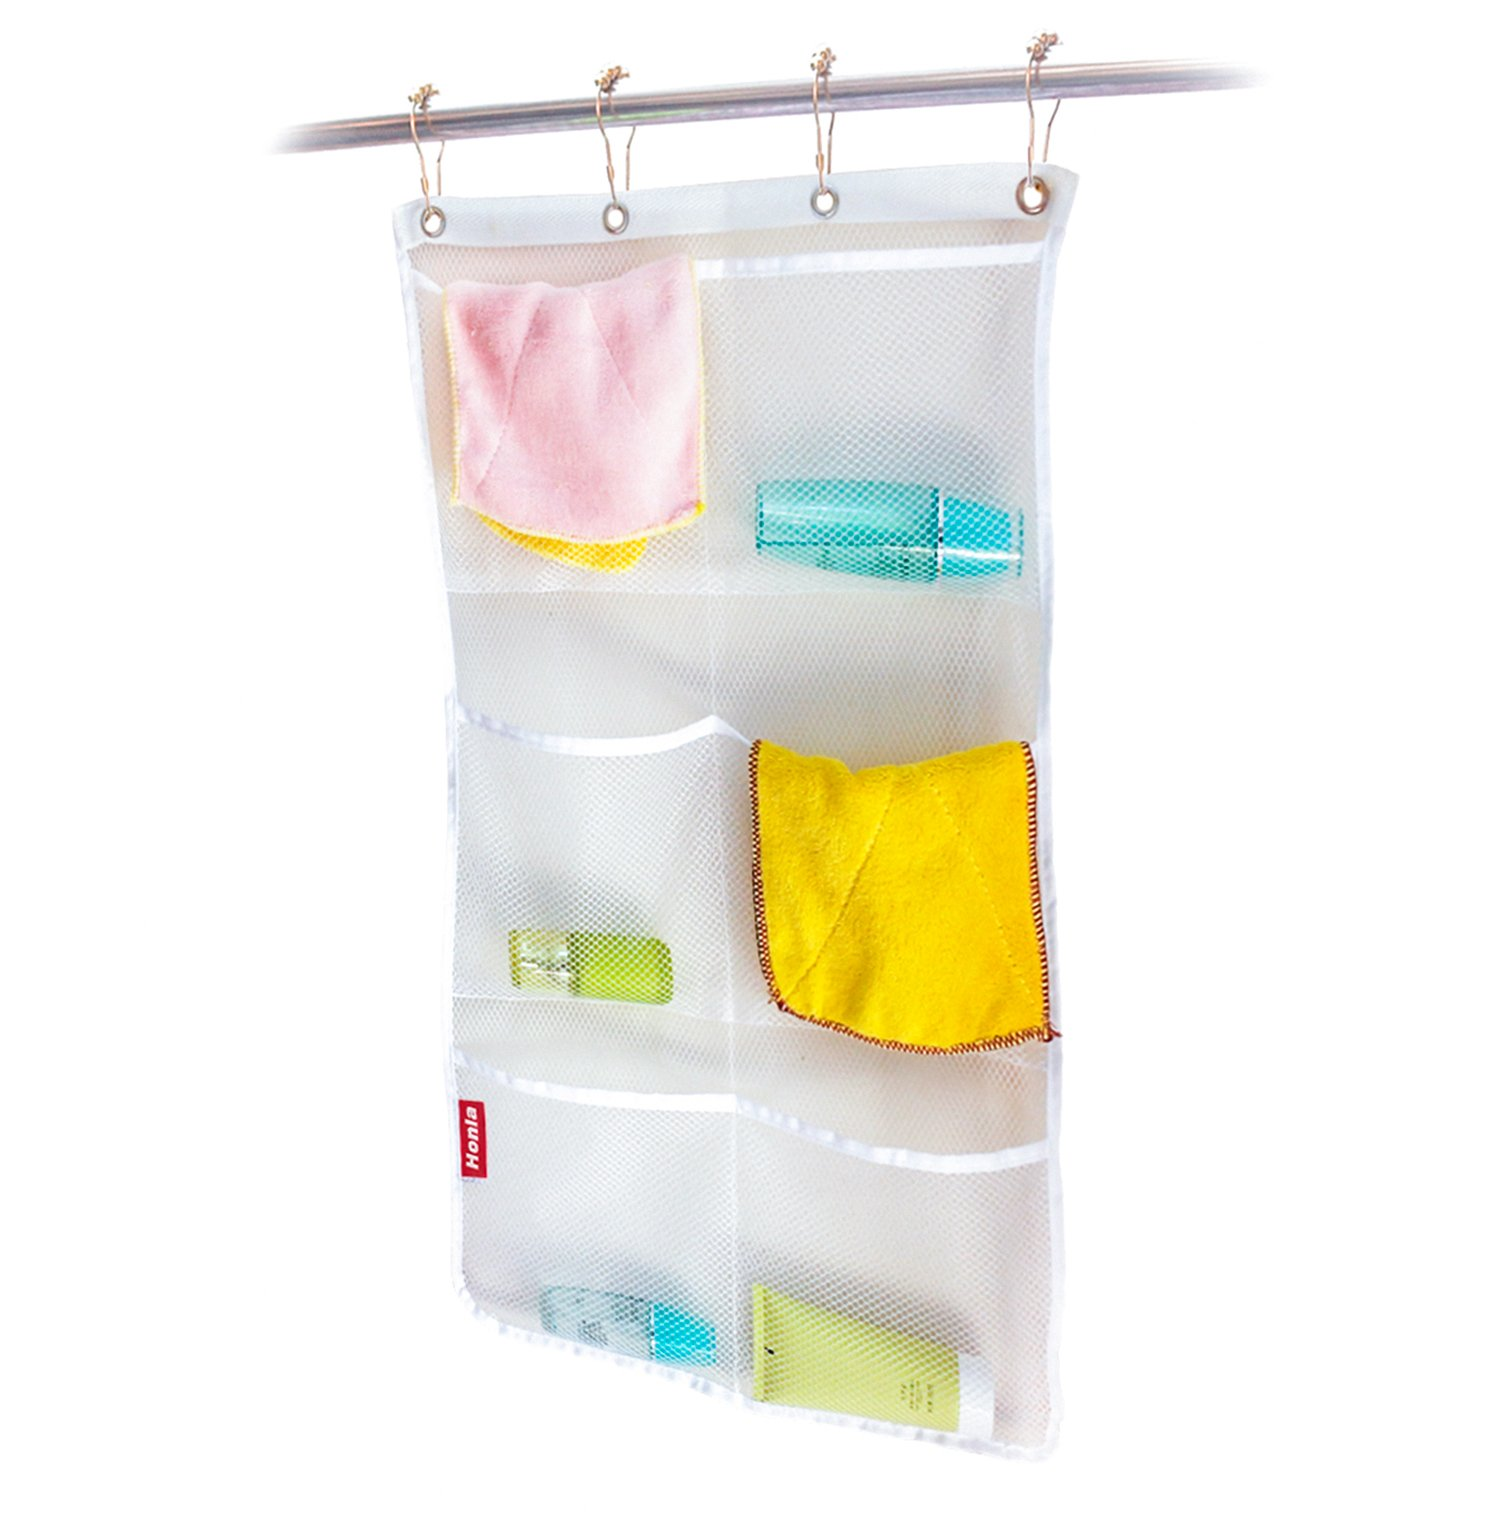 Honla 2 Pack Hanging Mesh Bath Shower Caddy Organizer With 6 Clear Storage PocketsLarge Grommets Set Hang On Curtain Rod Liner Hooks For Bathroom